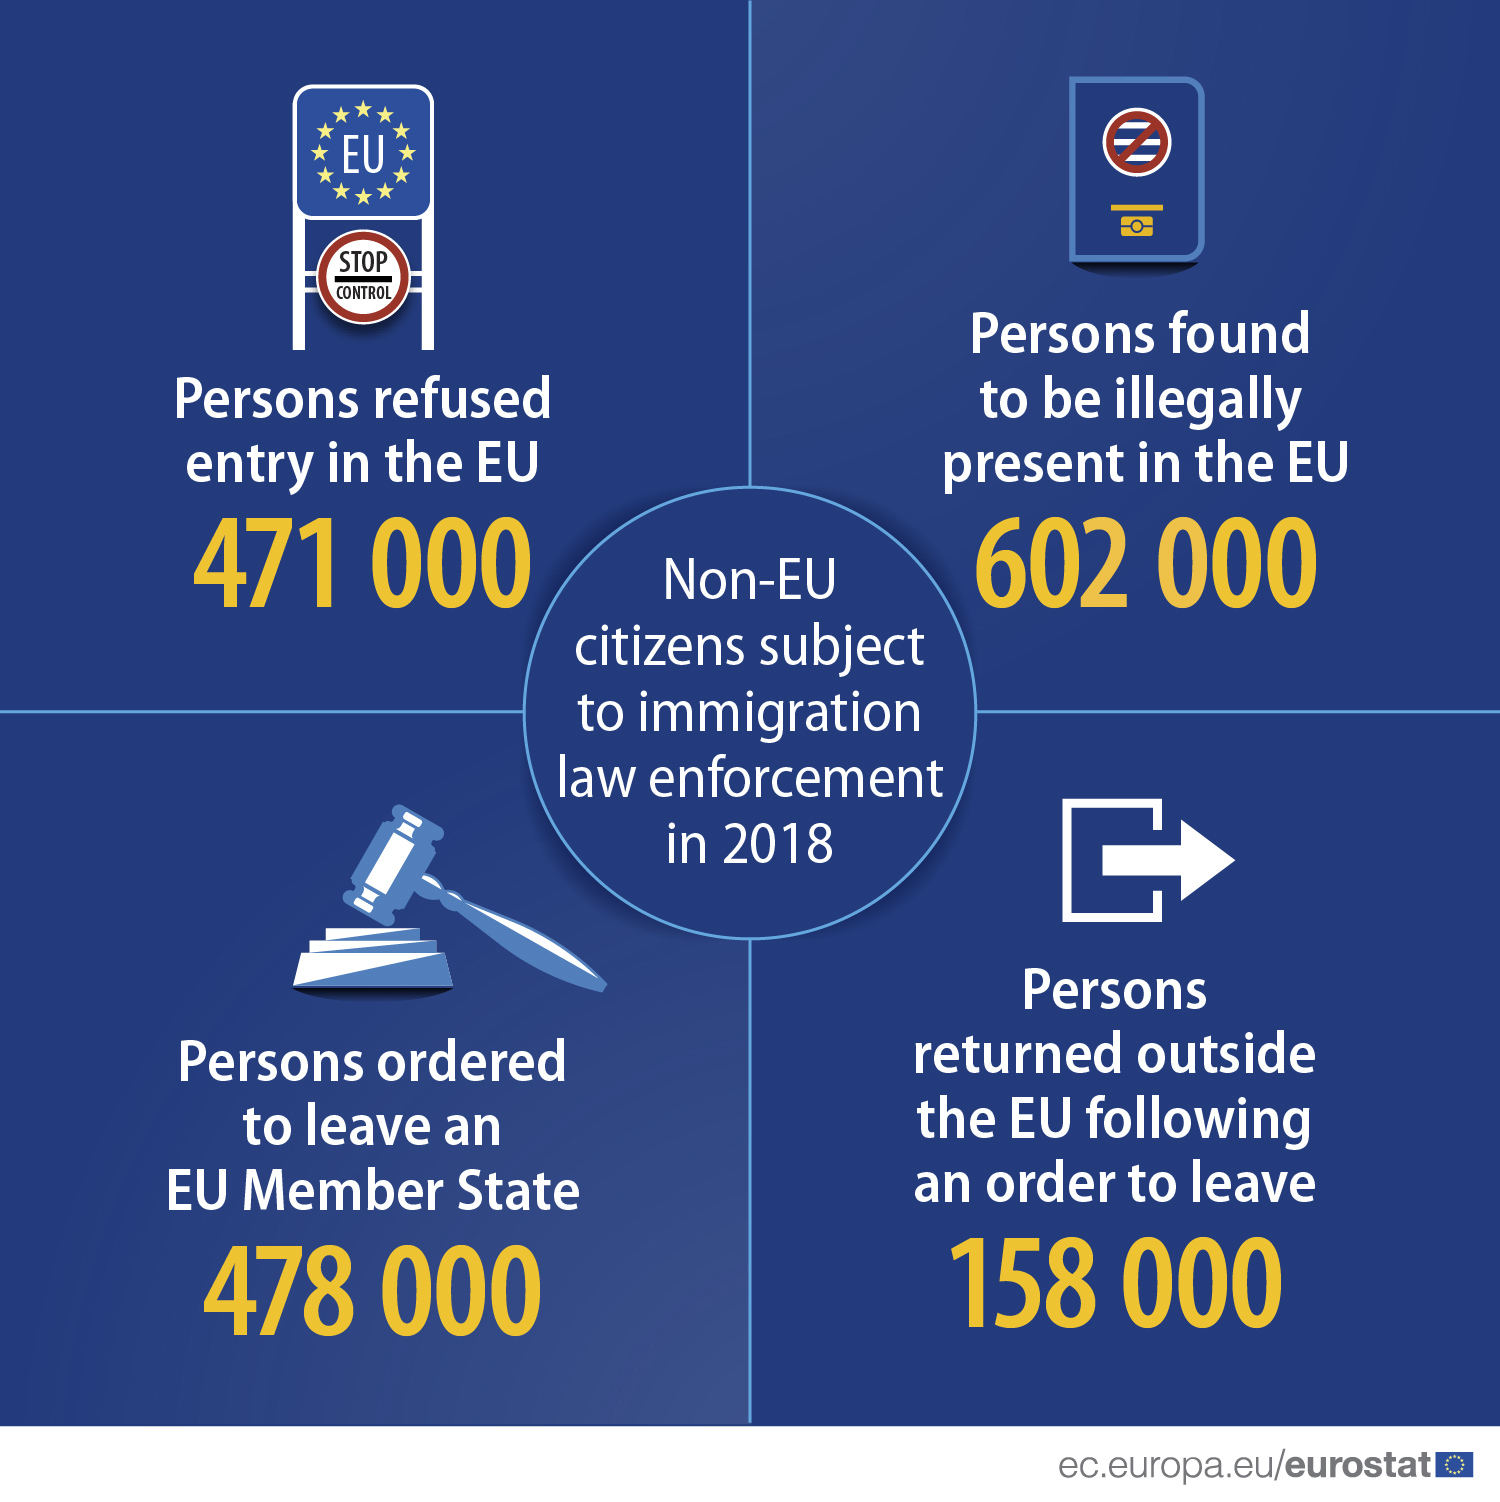 Infographic illustrating the key figures related to non-EU citizens subject to immigration law enforcement in 2018